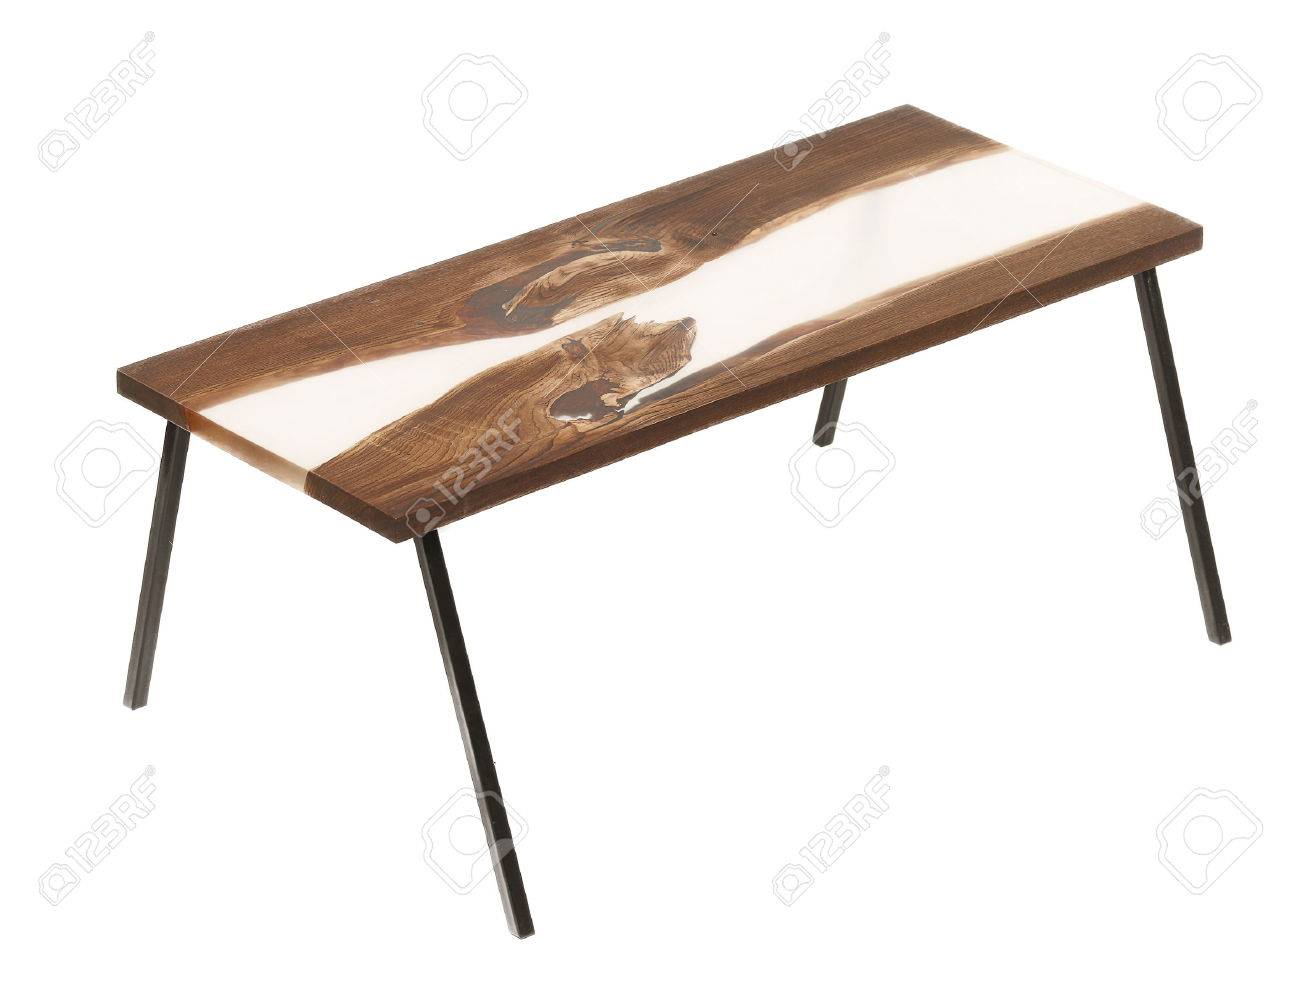 Wood And Epoxy Table With Metal Legs On White Isolated Background